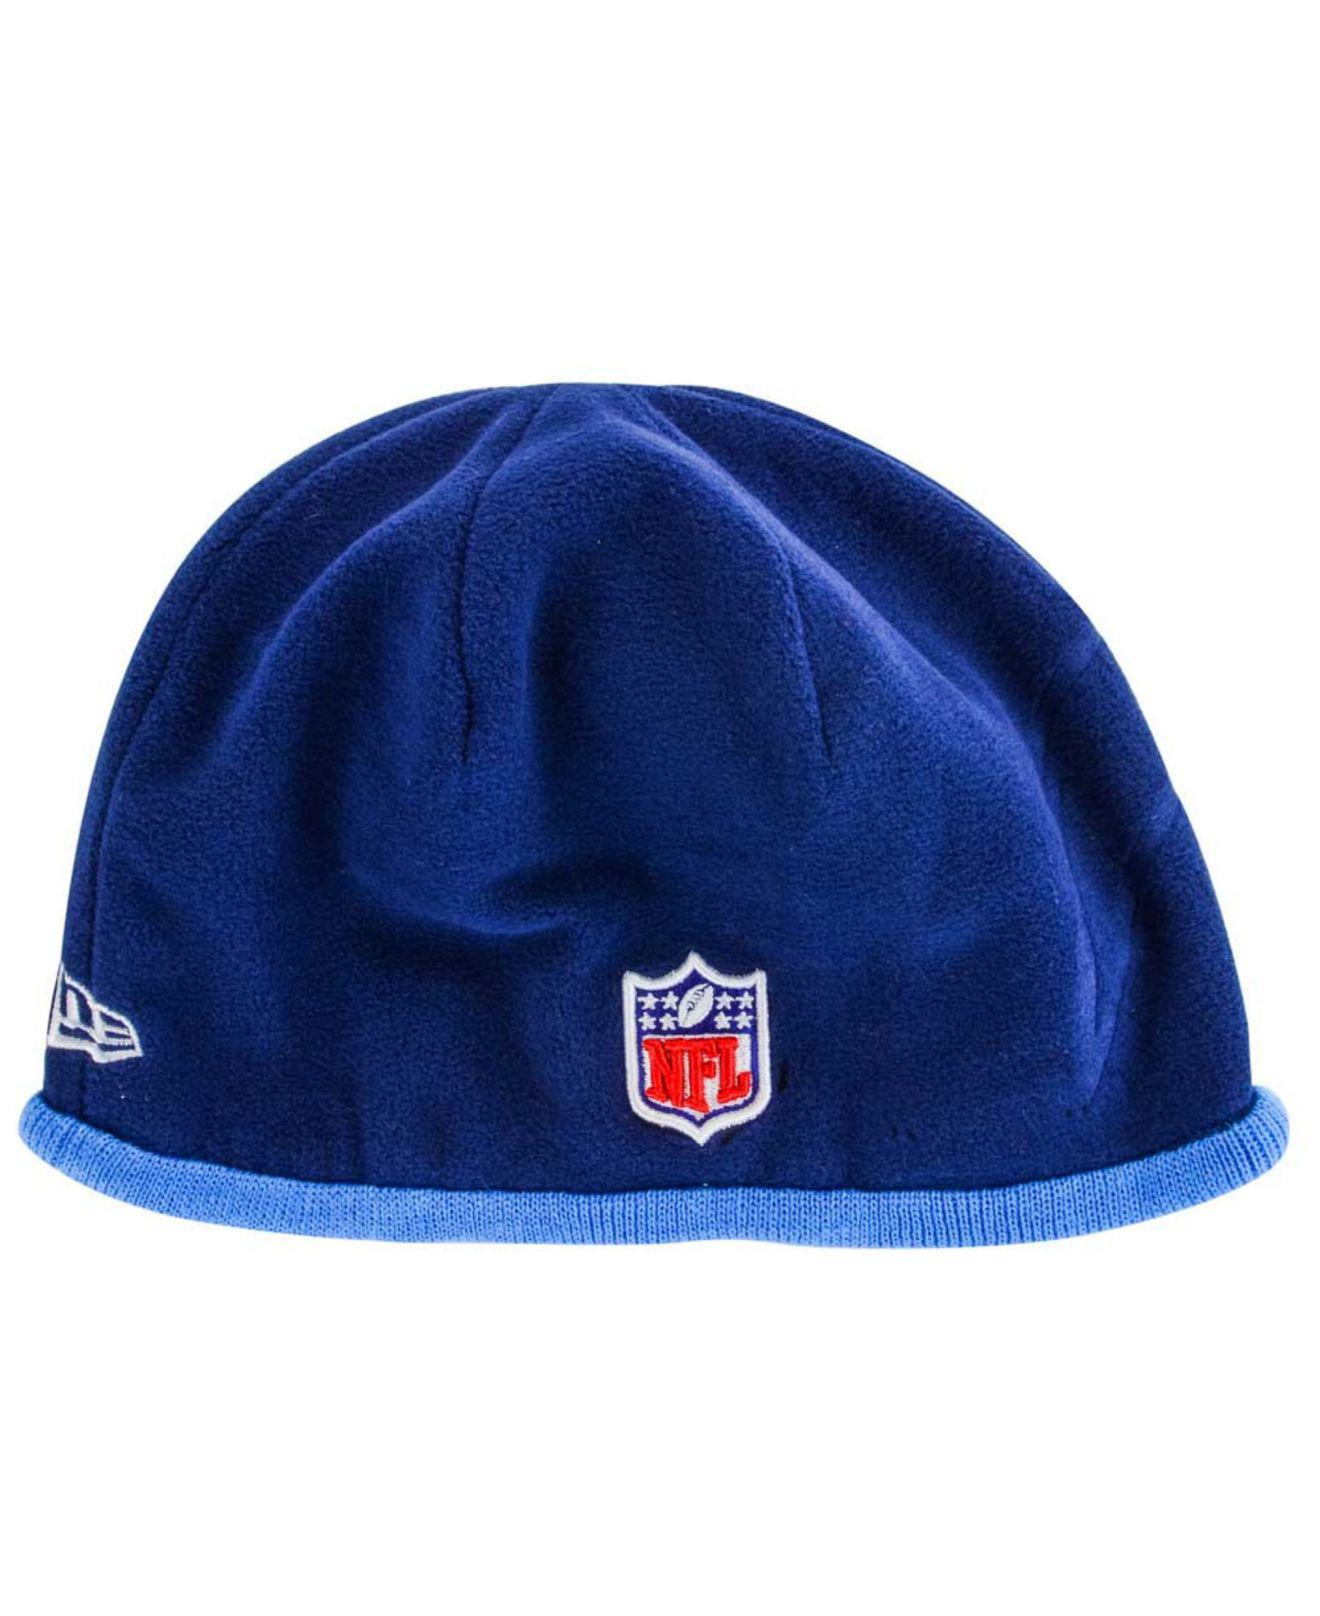 Lyst - Ktz San Diego Chargers Tech Knit Hat in Blue for Men e547d50a160f